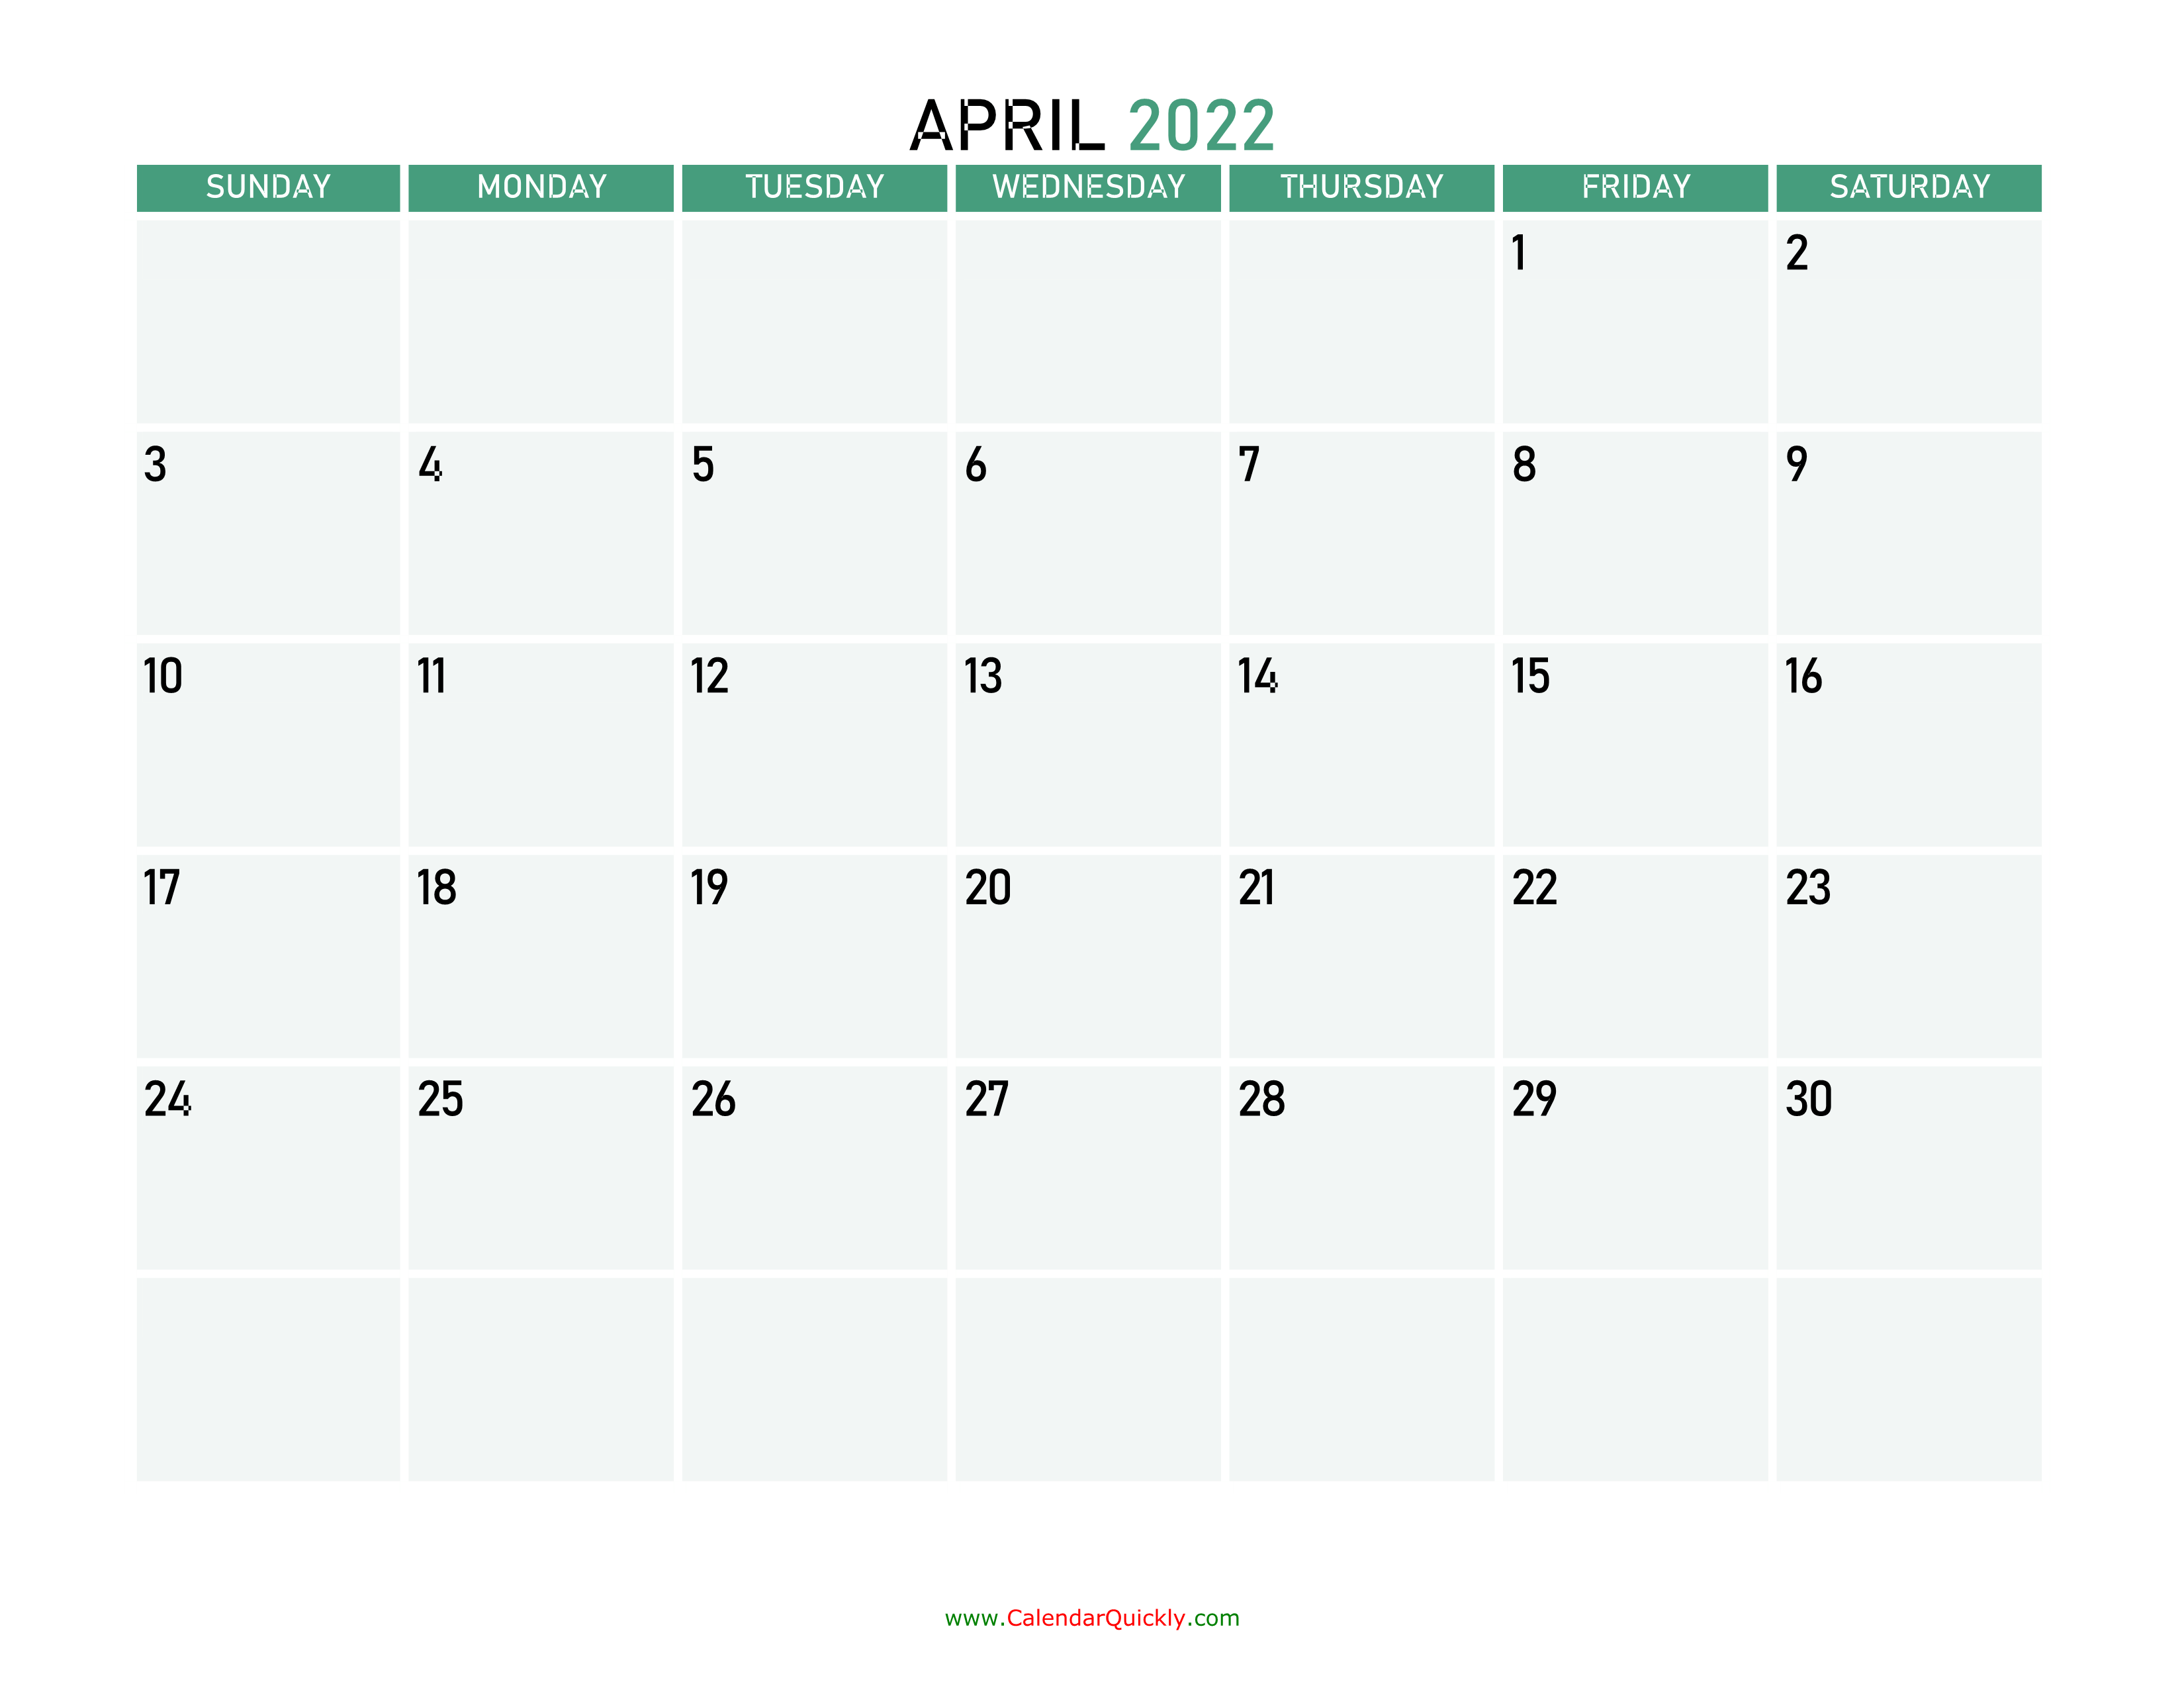 April 2022 Calendars | Calendar Quickly intended for March April 2022 Calendar Free Printable